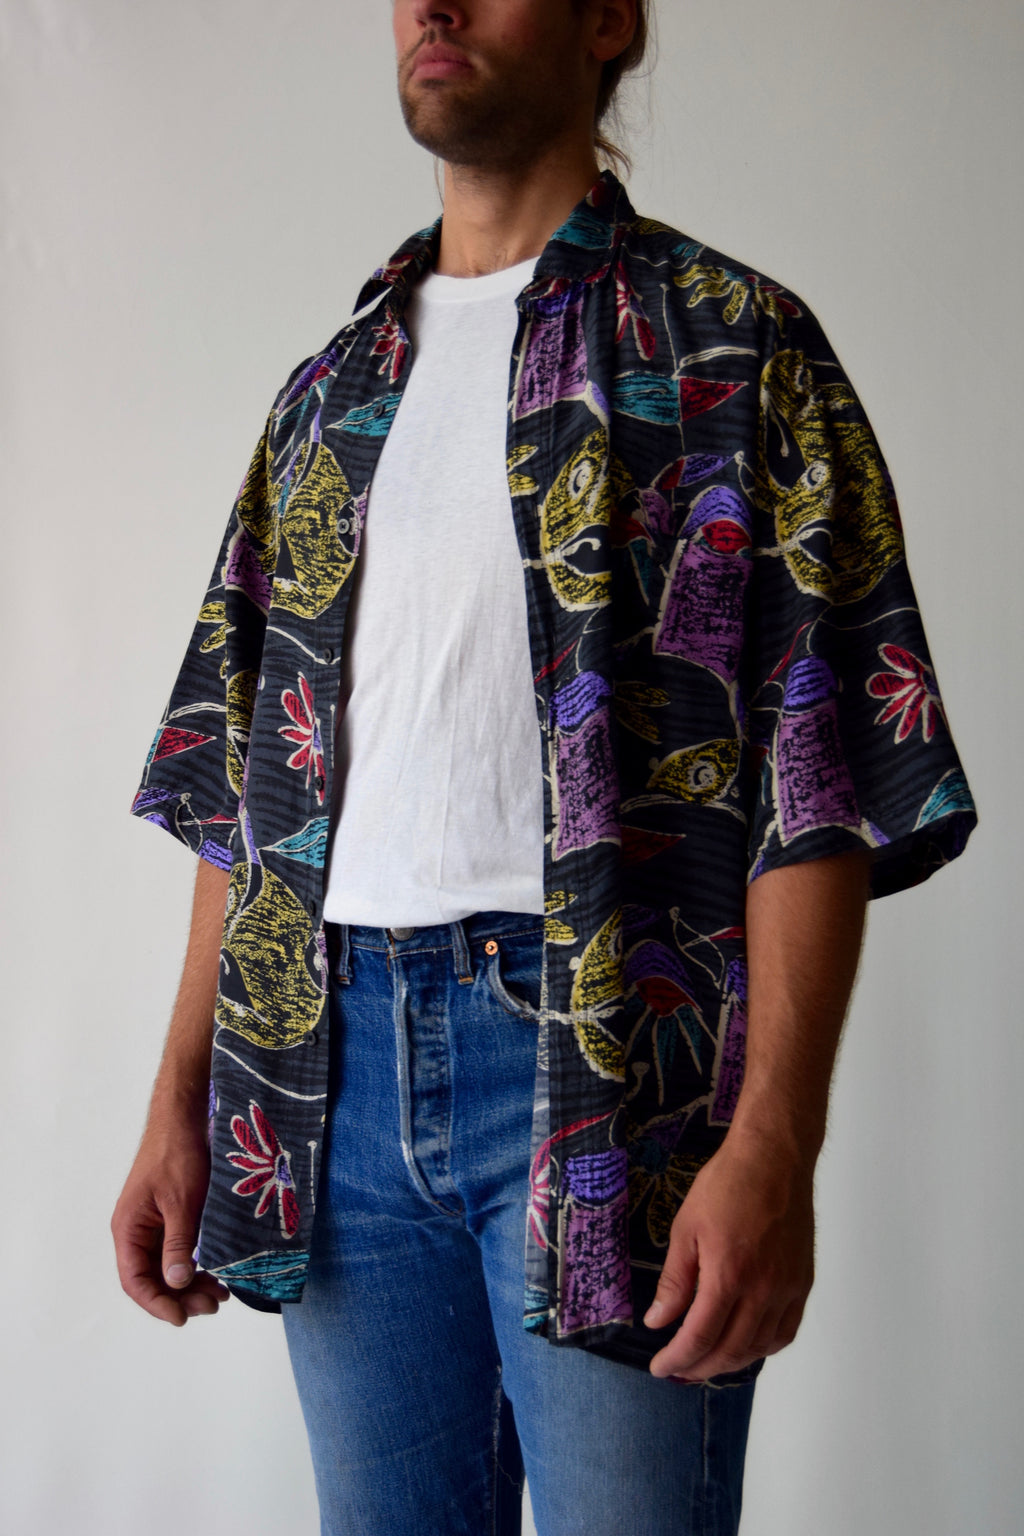 Vintage Men's Abstract Floral Silk Button Up Shirt